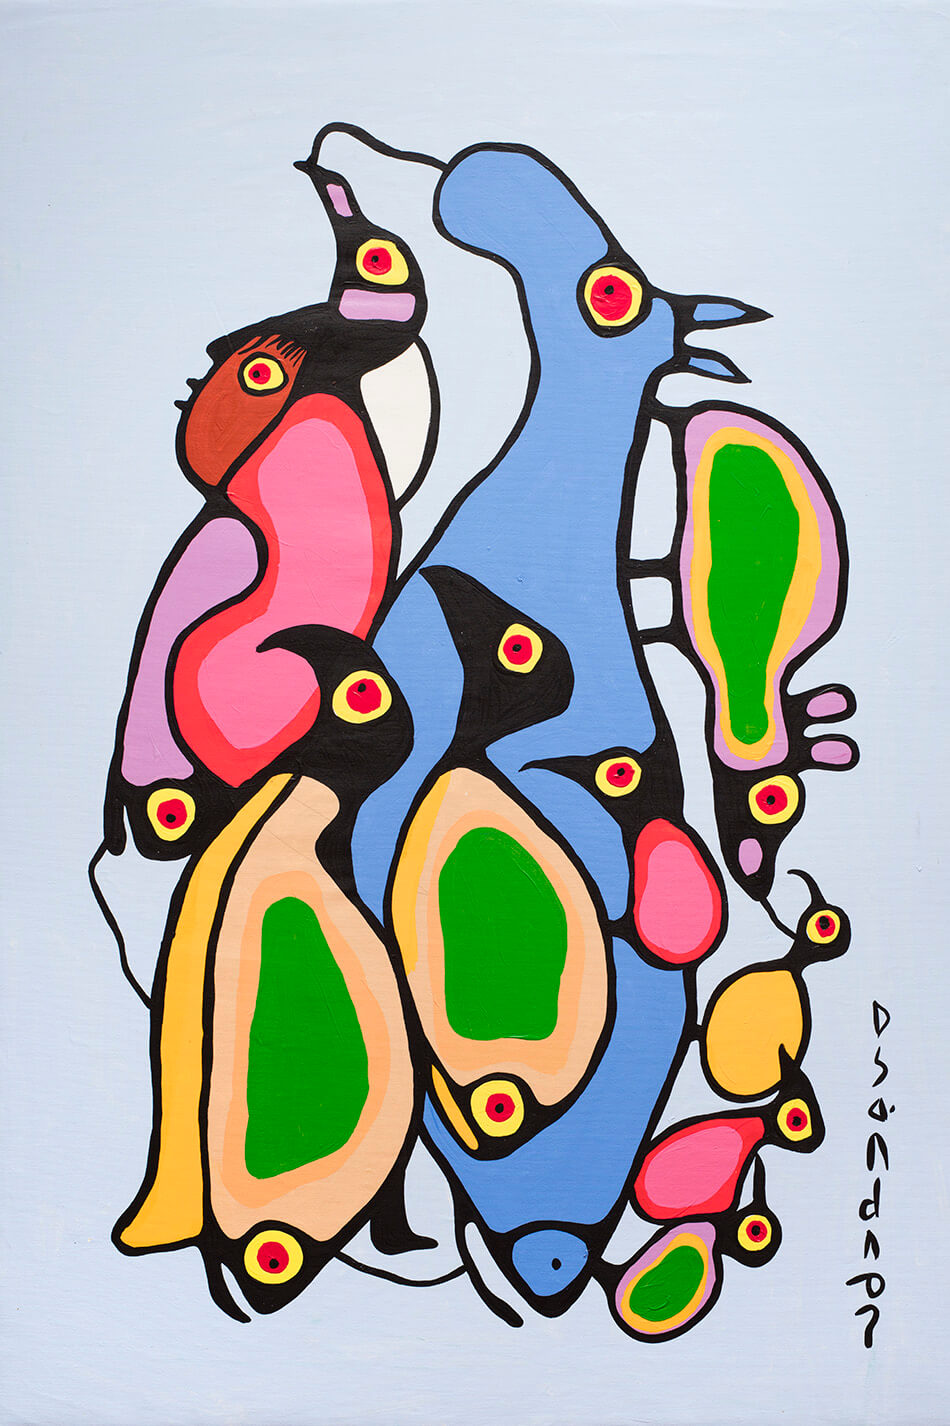 Fig. 3. Norval Morrisseau (Anishinaabe 1931–2007), Life Cycle, ca. 1980–85, acrylic on canvas, 134.6 x 91.4 cm, Gift of Mr. Nicholas John Pustina, Mr. Robert Edward Zelinski, and Mr. Kenny Alwyn Whent, 1985.